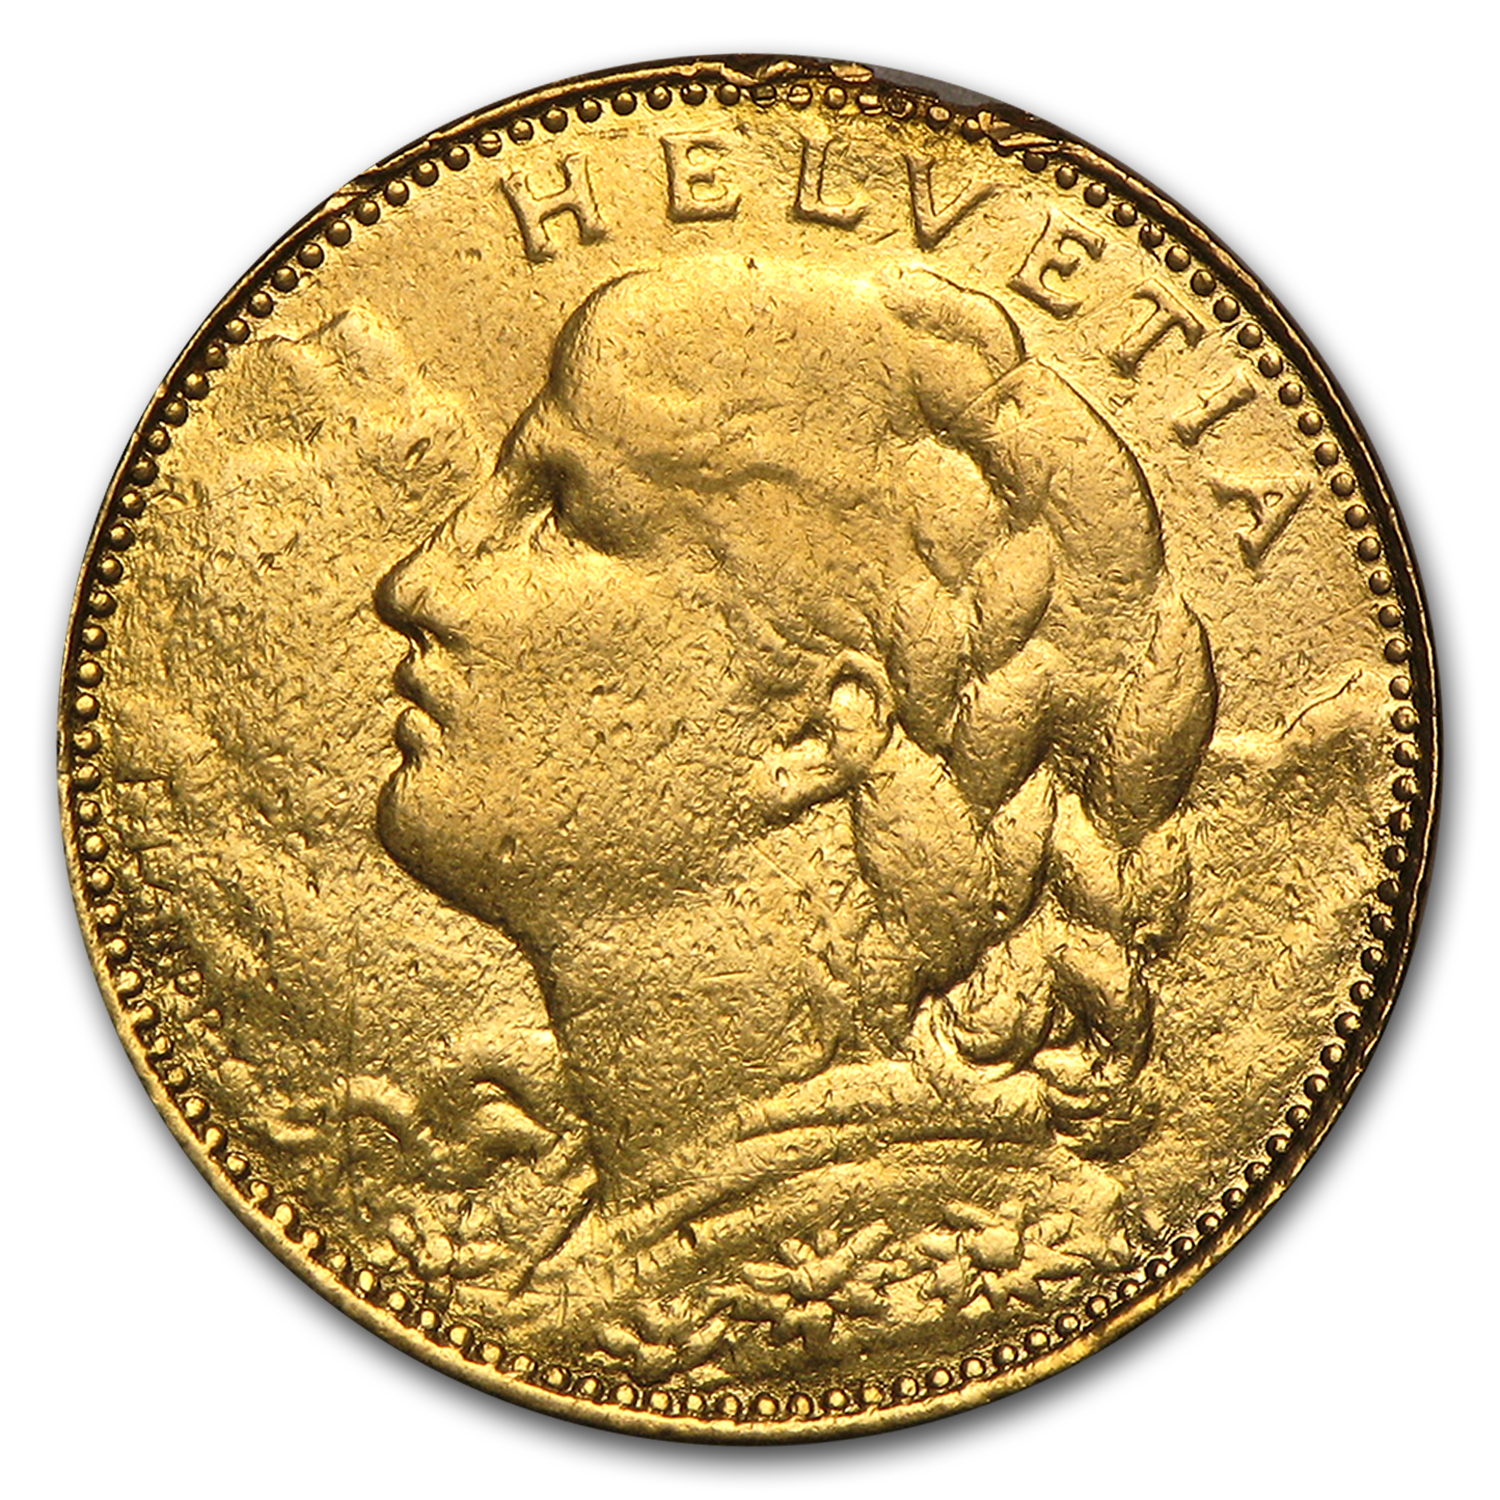 Switzerland 1911 - 1922 10 Francs Gold - Average Circulated